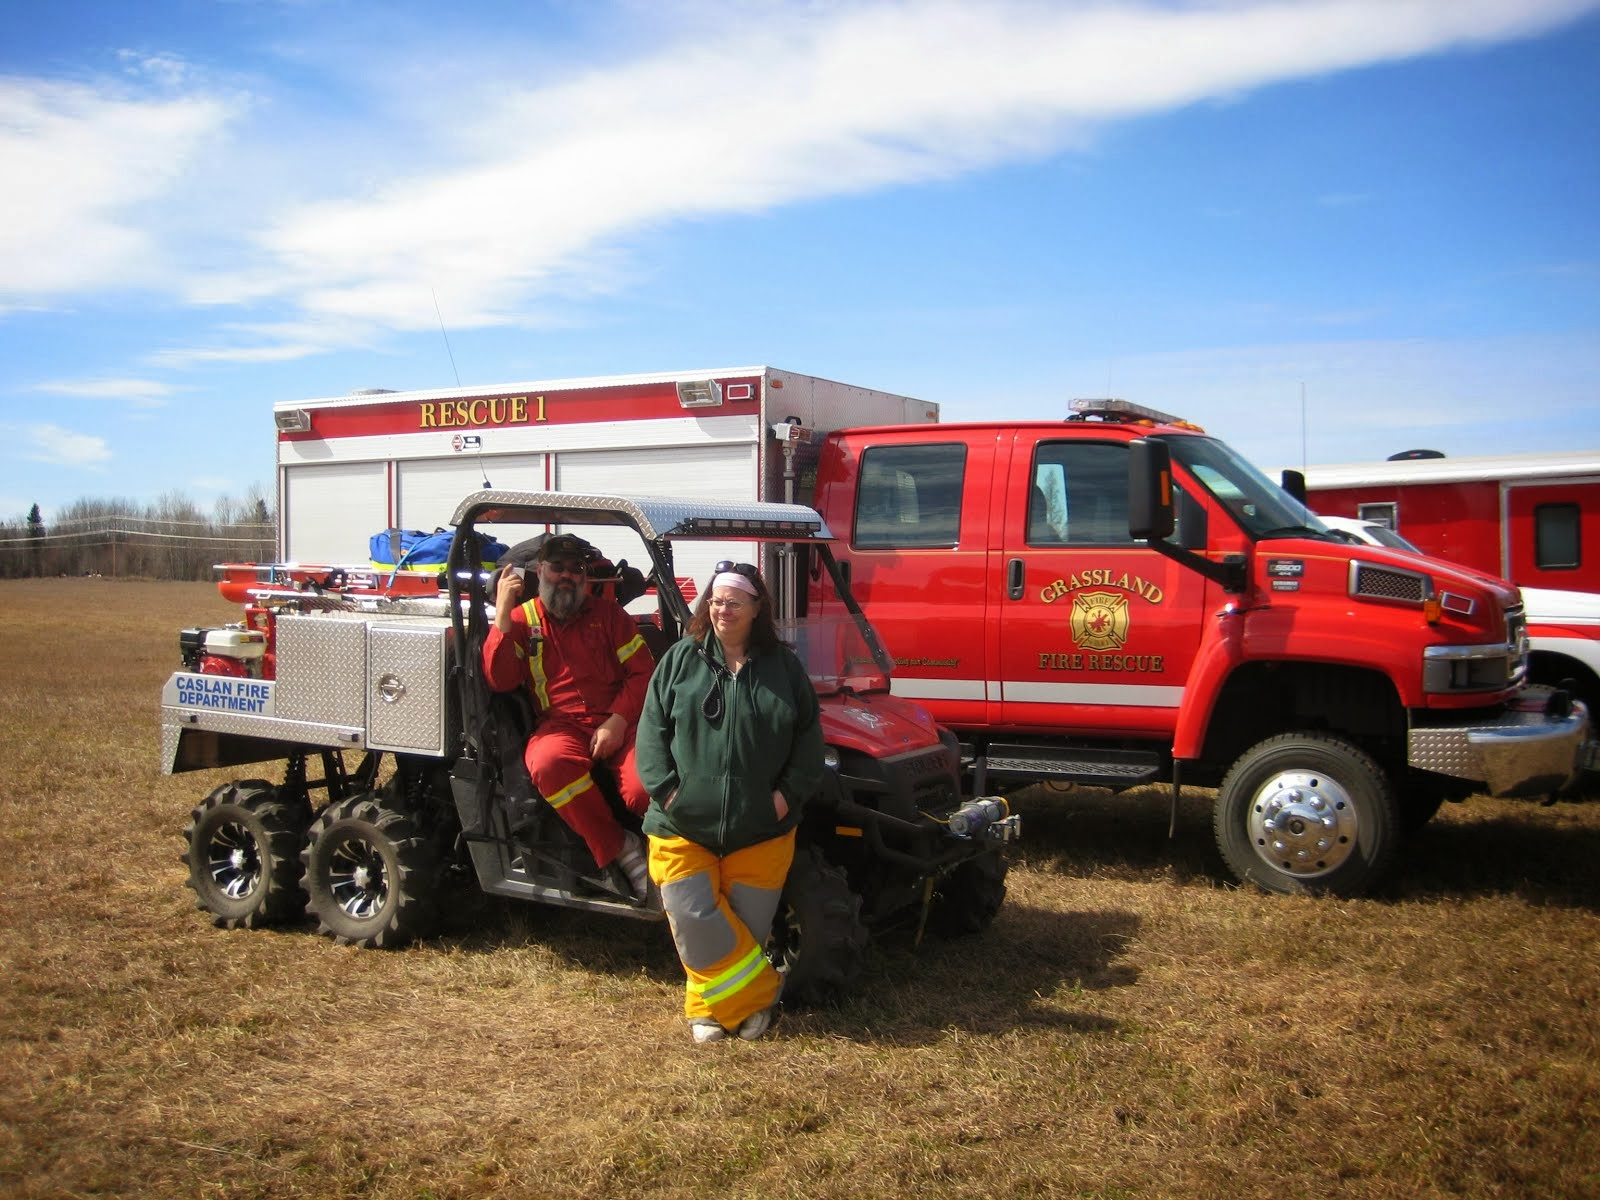 CASLAN FIRE & RESCUE